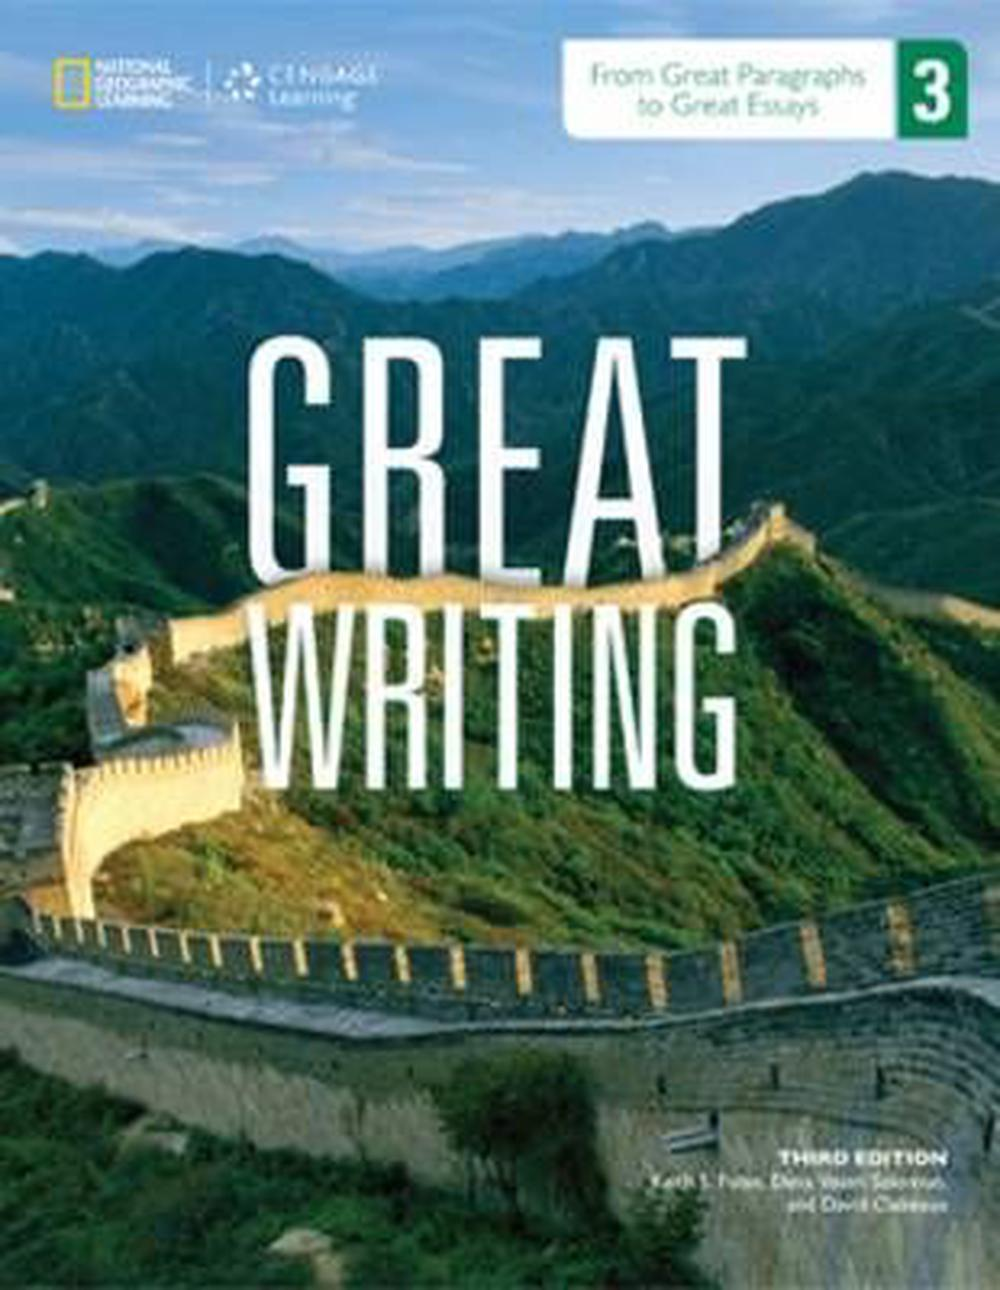 great writing 3 from great paragraphs to great essays 3rd edition Great writing bridges the gap from esl writers to mainstream writersthe great writing series uses clear explanations and extensive practical activities to help students write great sentences, paragraphs, and essays.